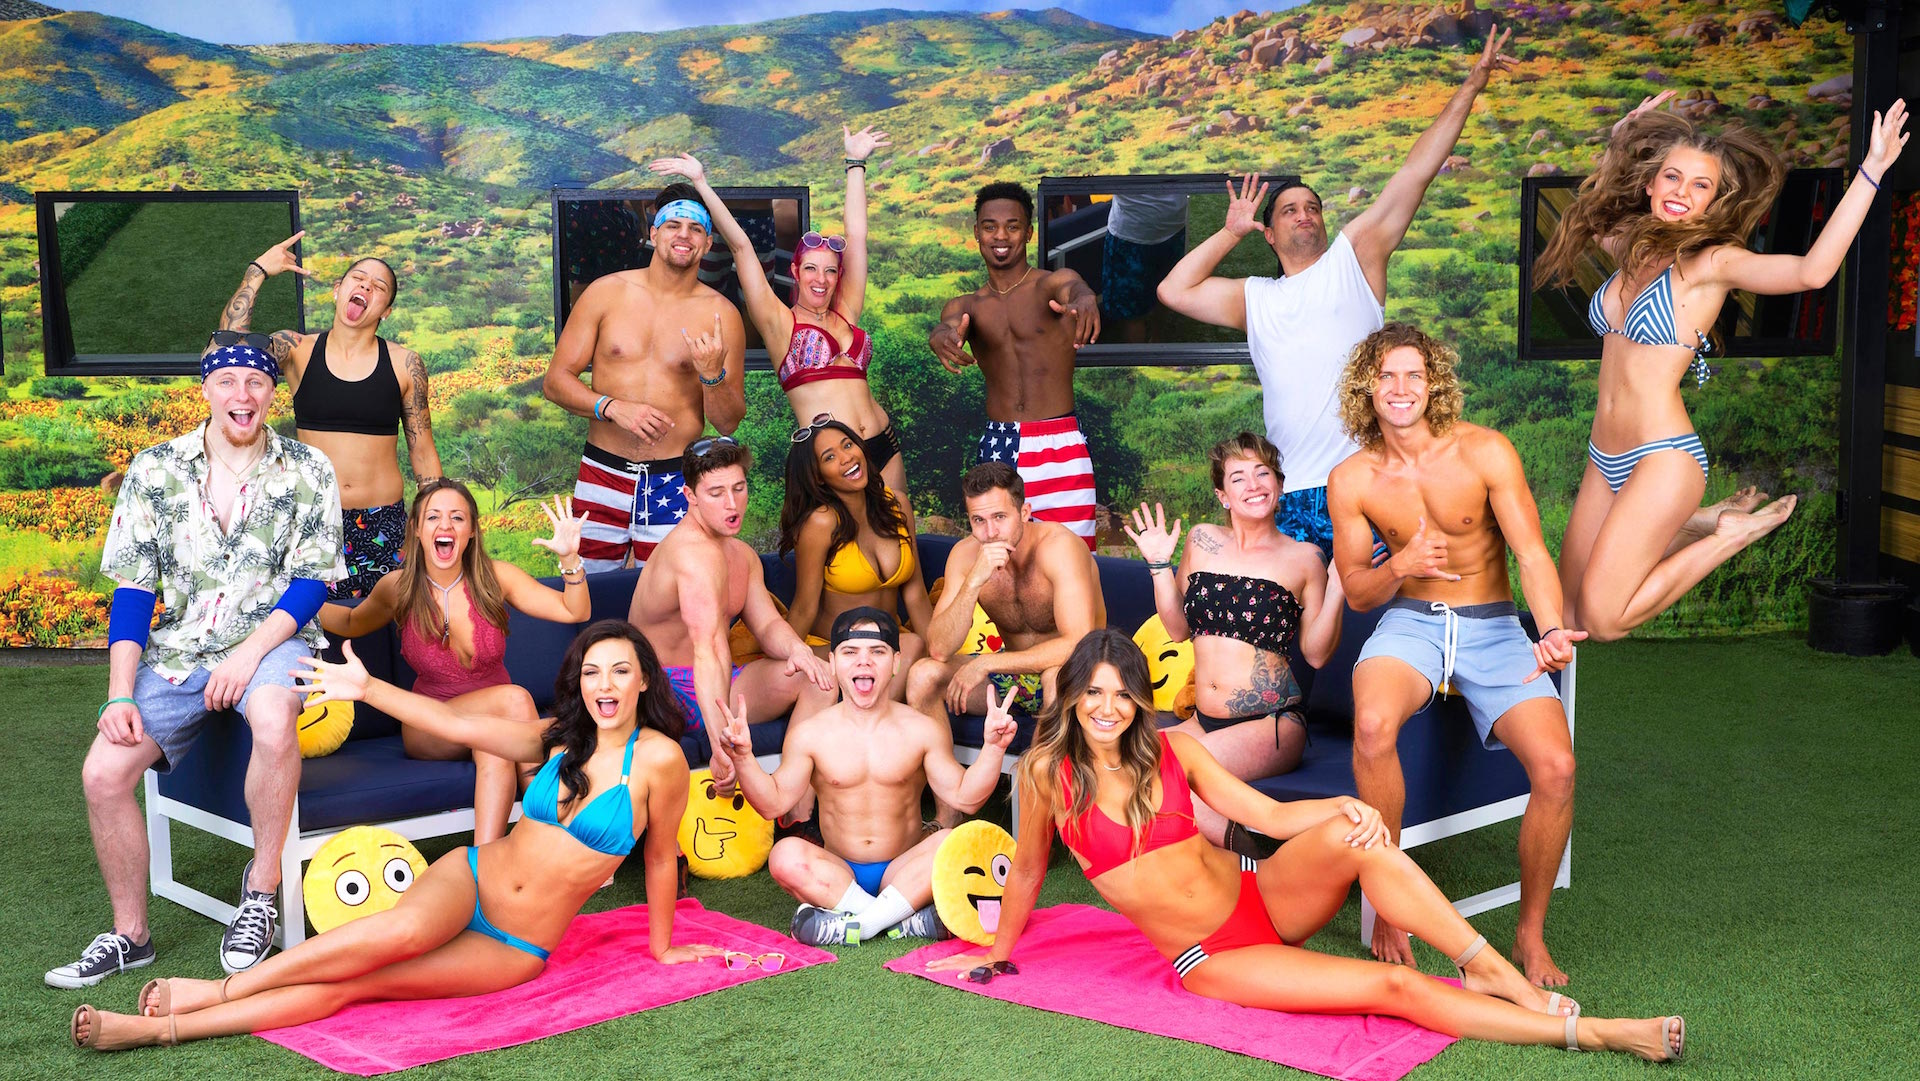 Big Brother' Sets Up New 'Consequences' for Inappropriate Behavior